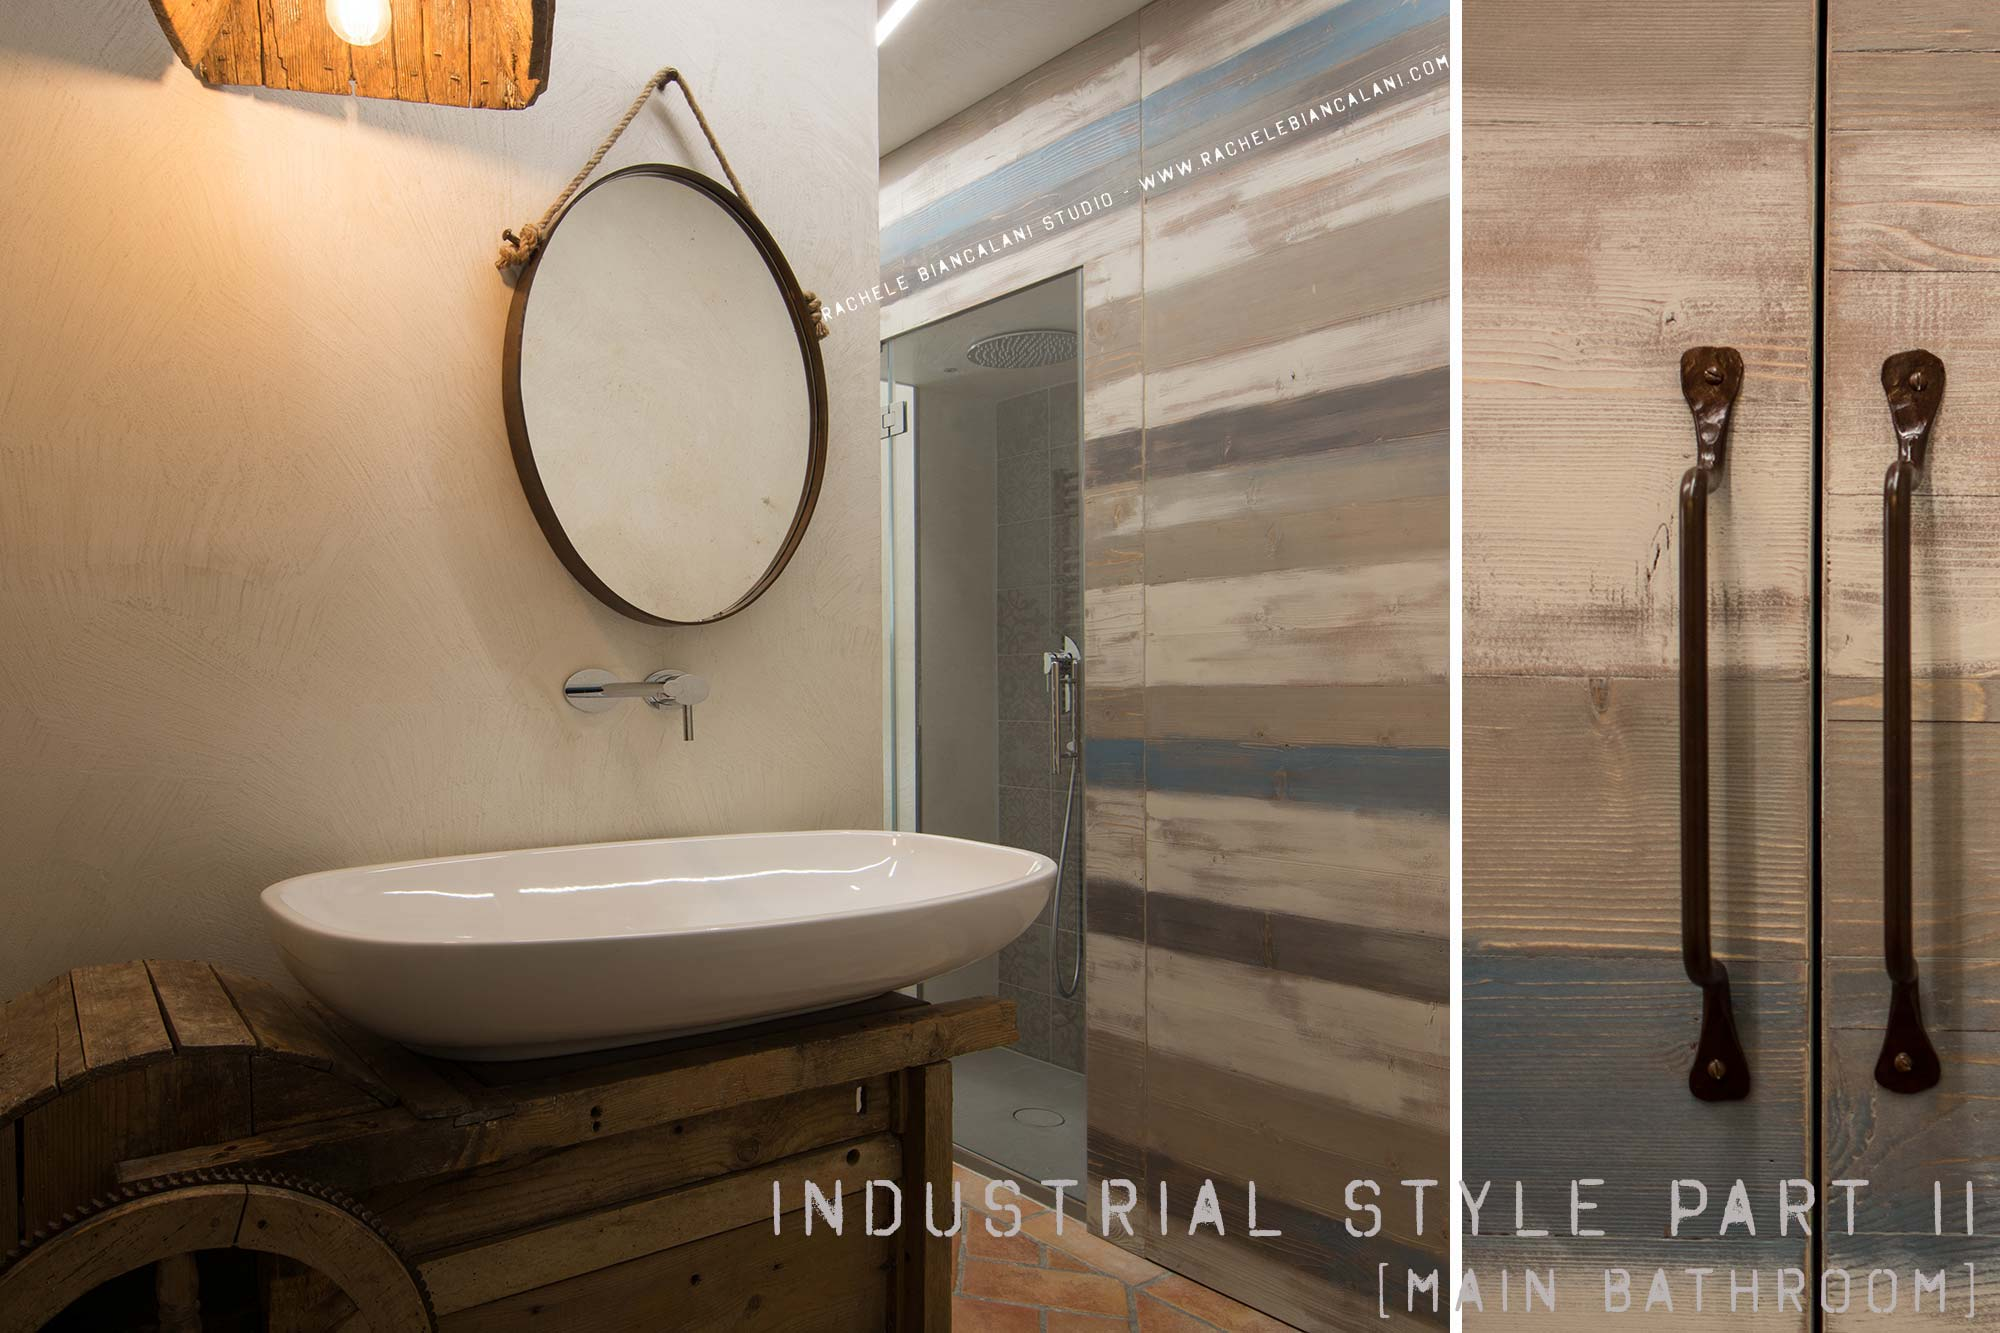 Vintage industrial style a brand new stunning bathroom for Cabine vecchio stile